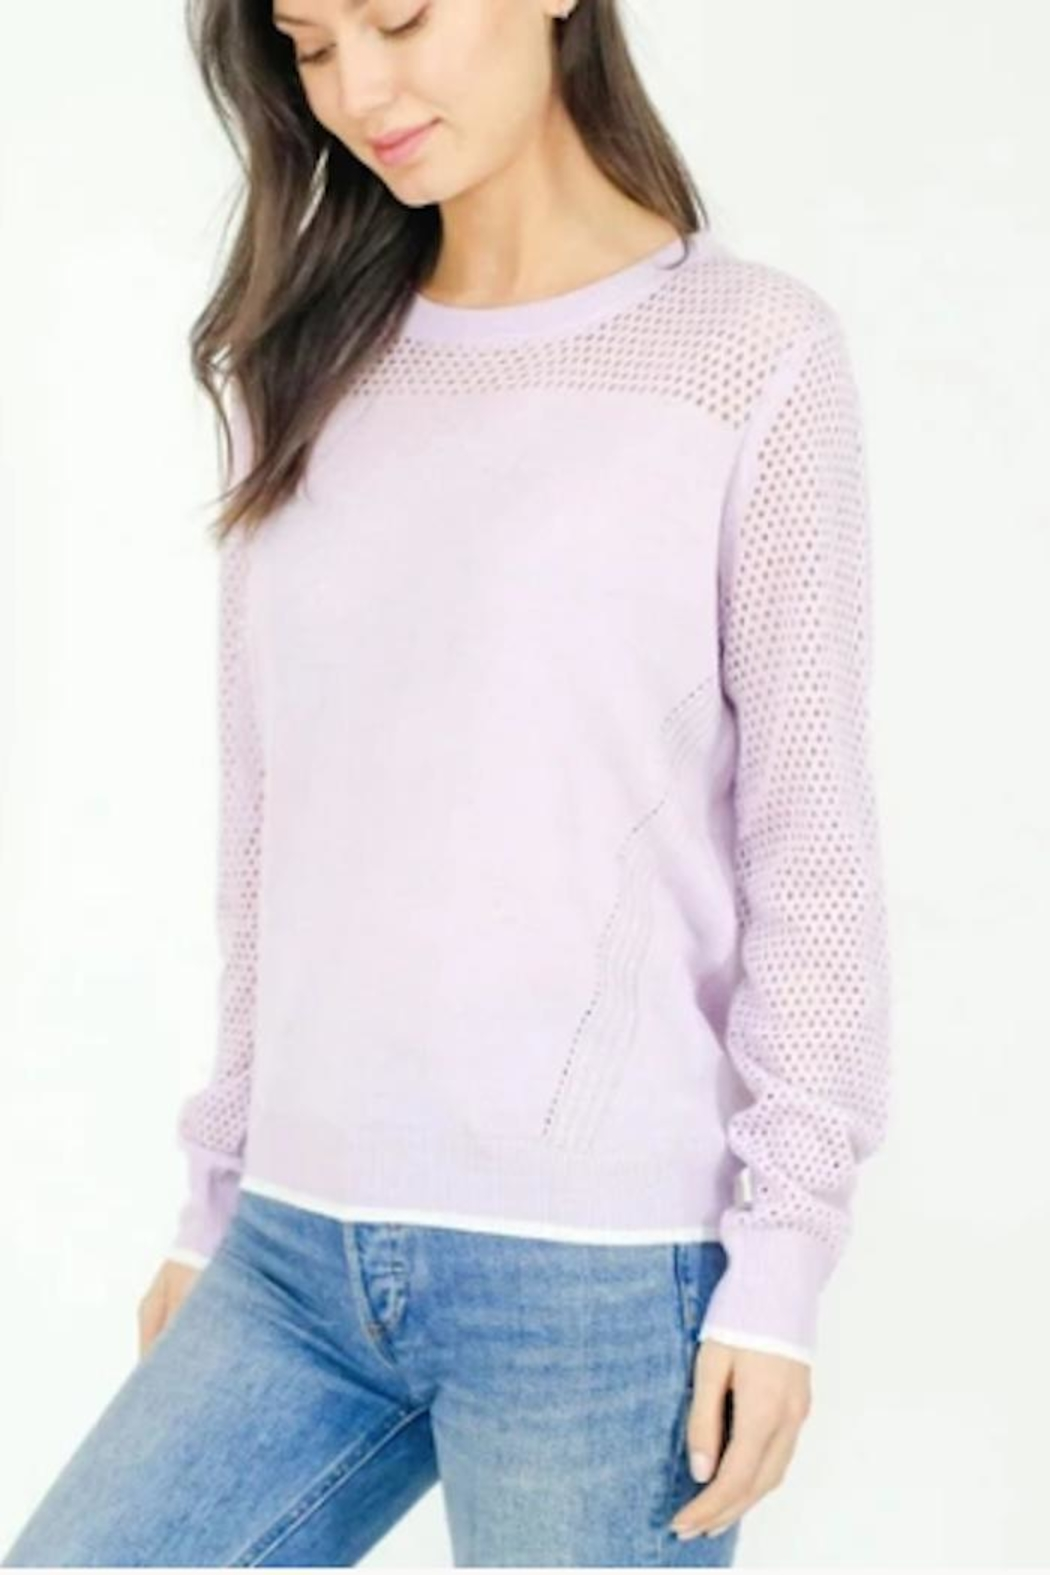 Six Fifty Mesh Detail Sweater - Main Image